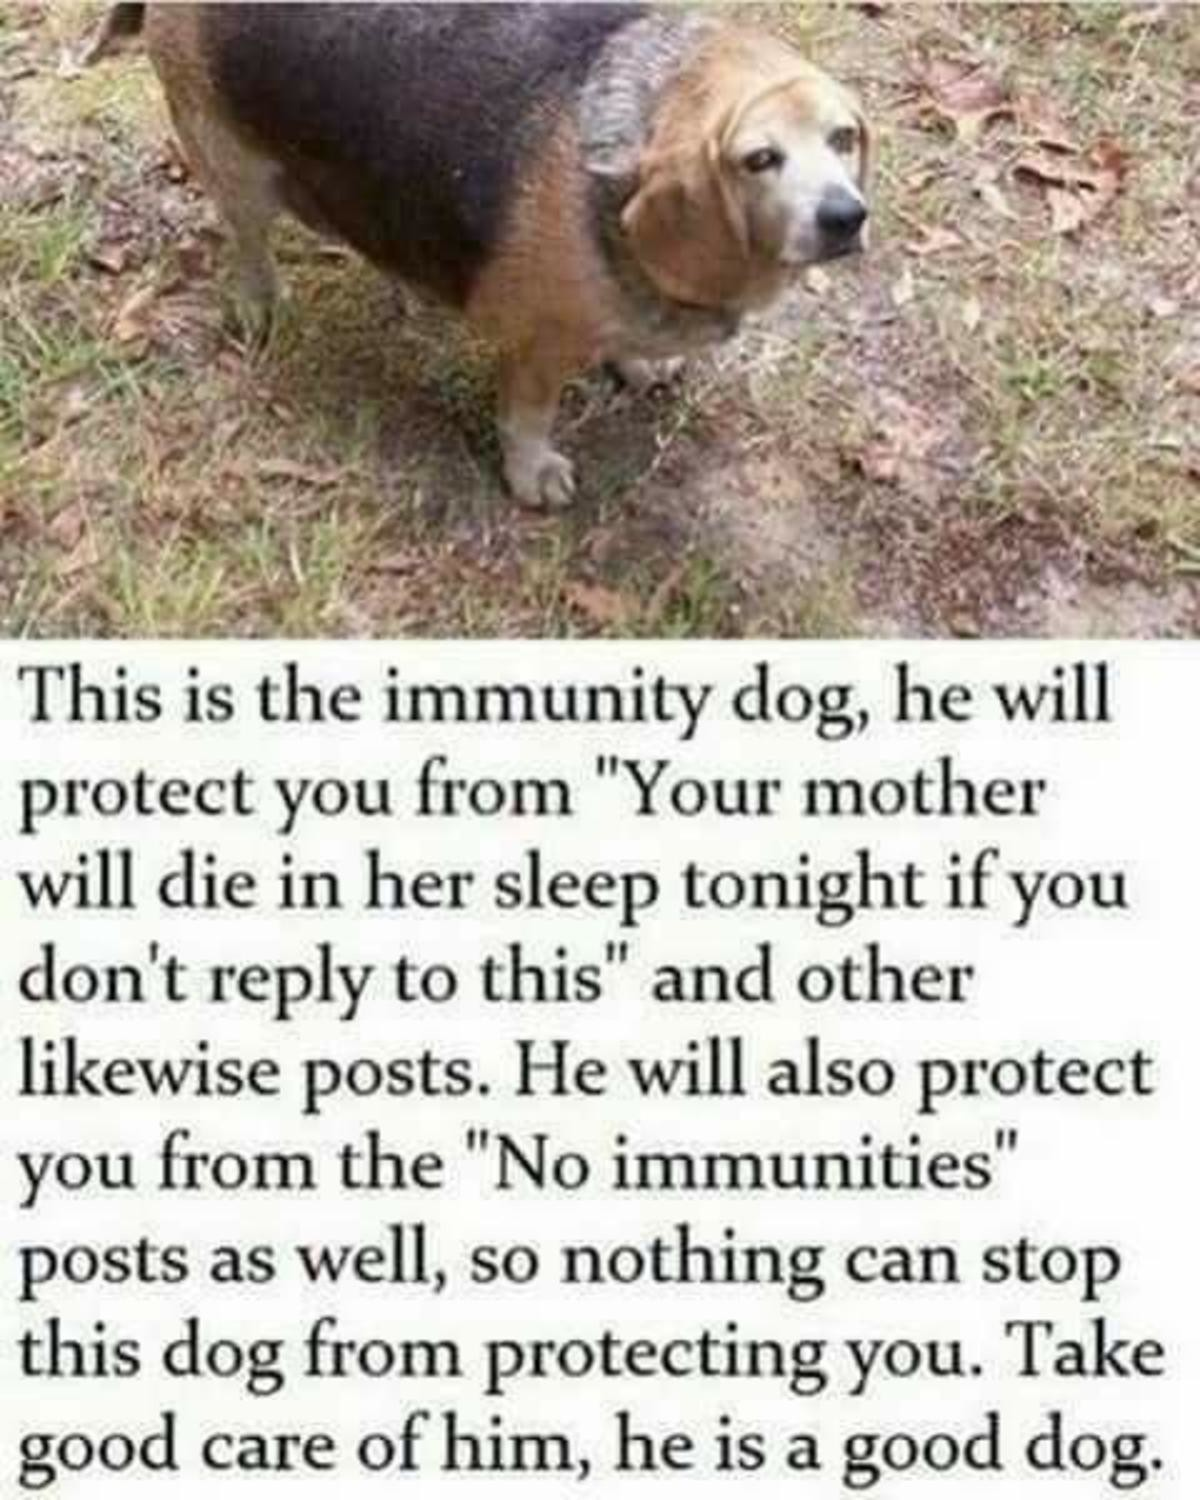 Immunity. .. If I see one of those posts, I'll just pull out my trump card